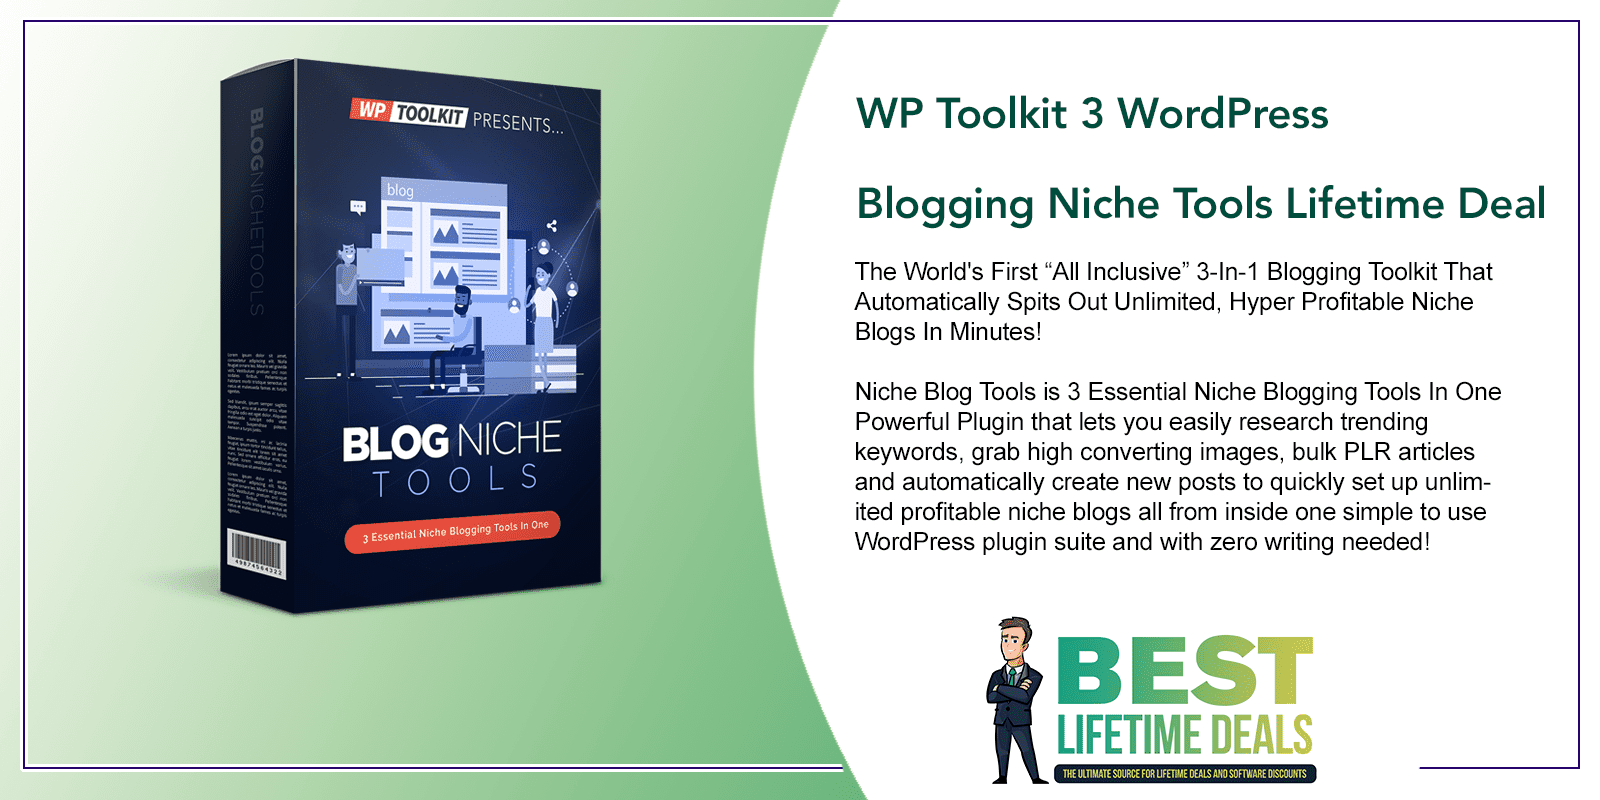 WP Toolkit 3 WordPress Blogging Niche Tools Featured Image